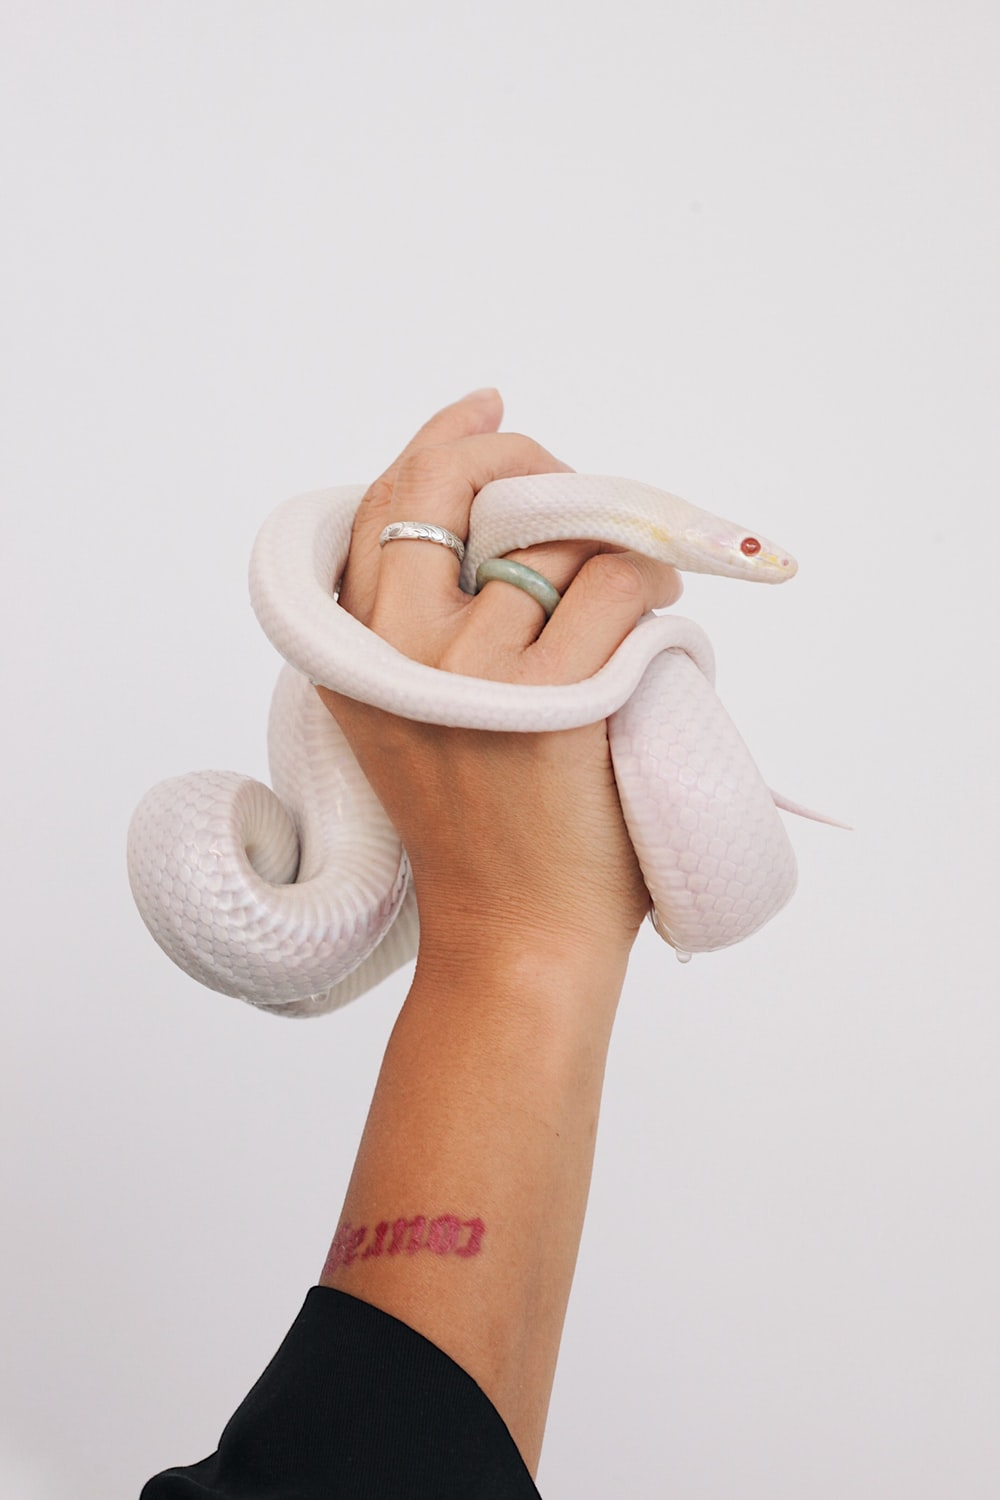 albino snake wrapped on person's hand